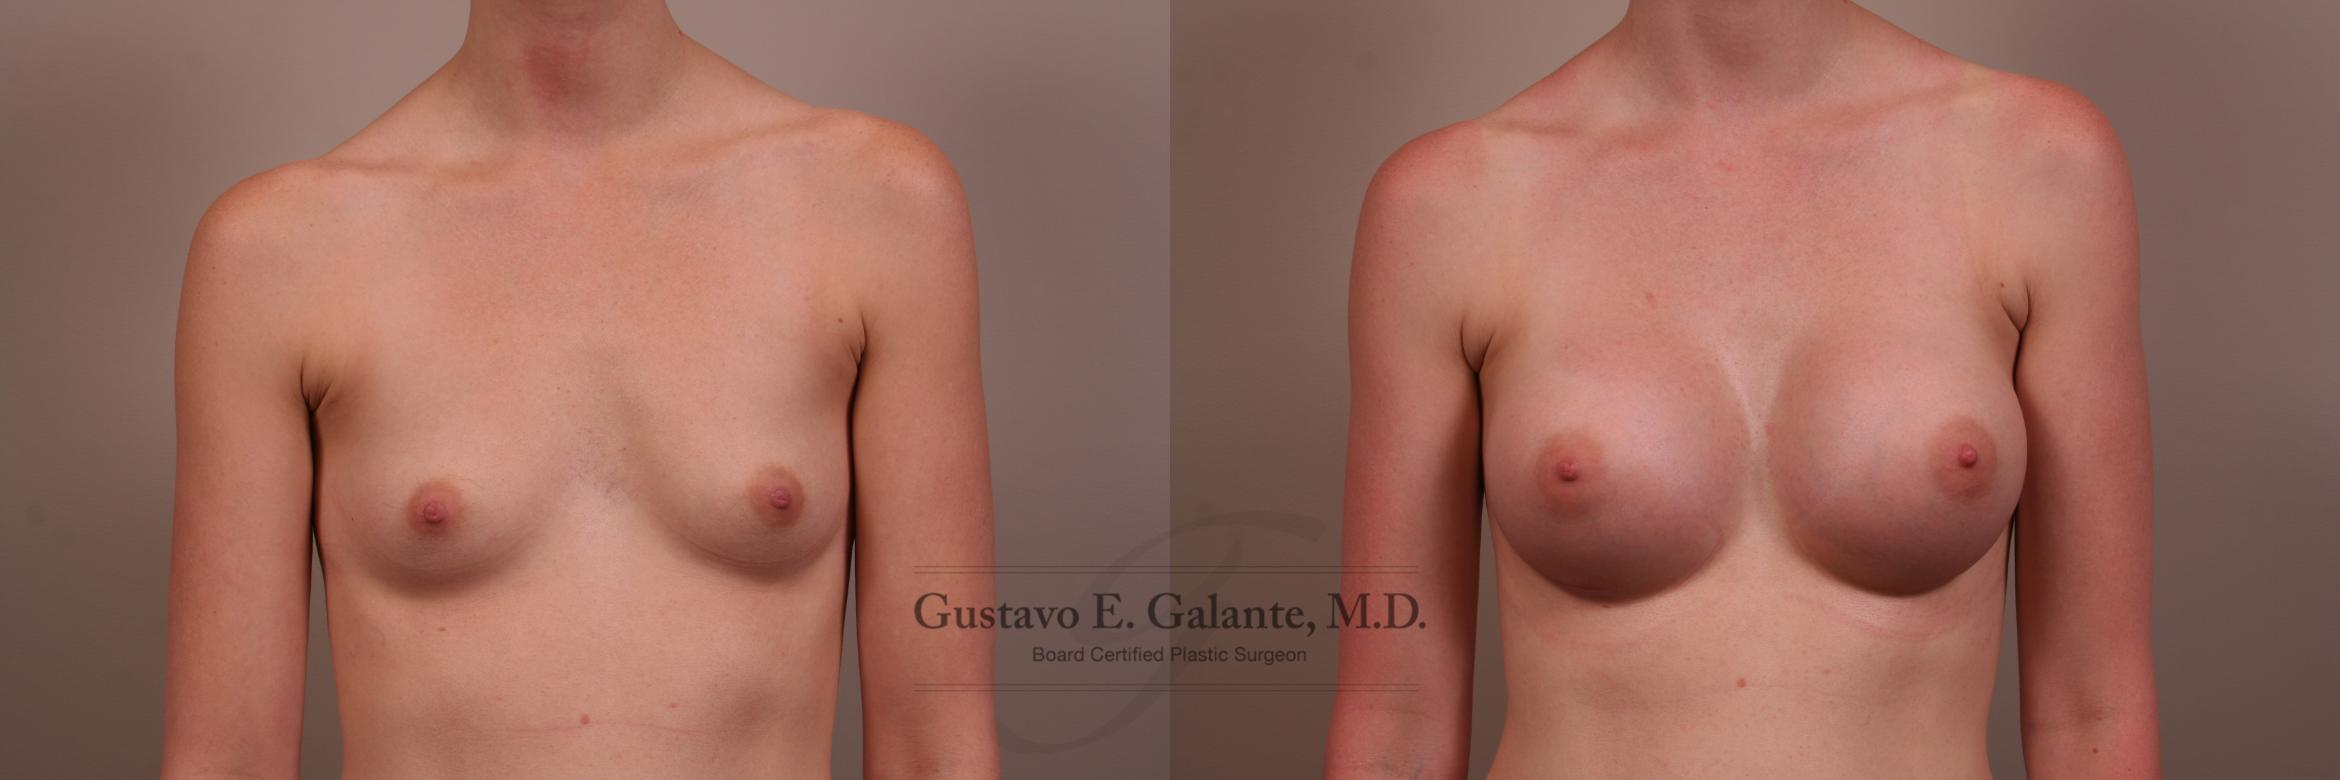 Breast Augmentation Case 123 Before & After View #1 | Valparaiso & Schererville, IN | Gustavo E. Galante, MD